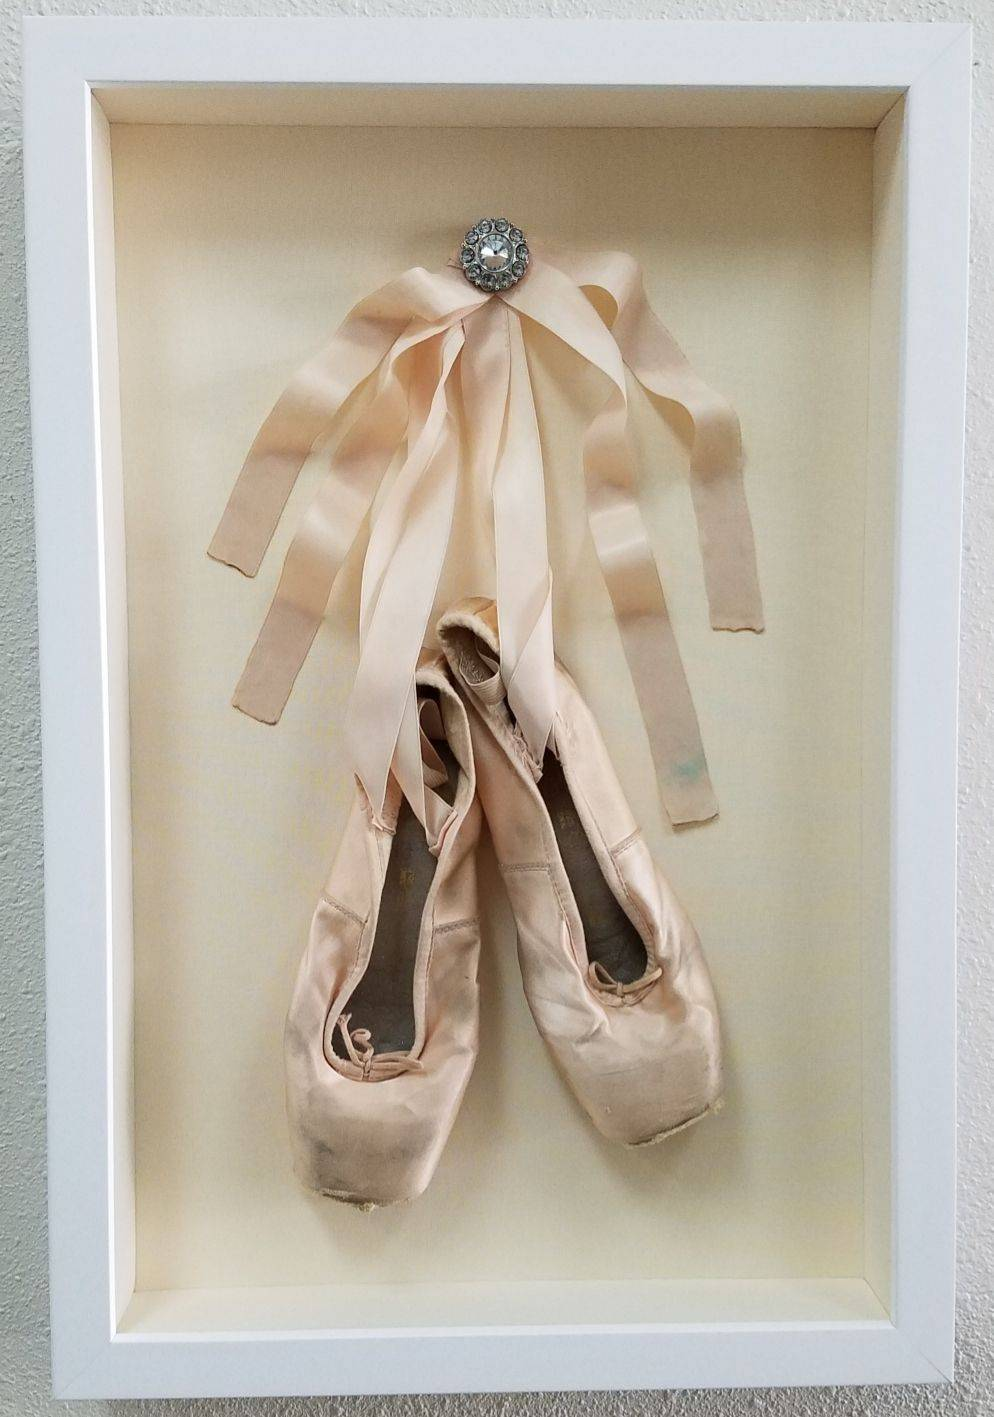 Framed ballerina slippers